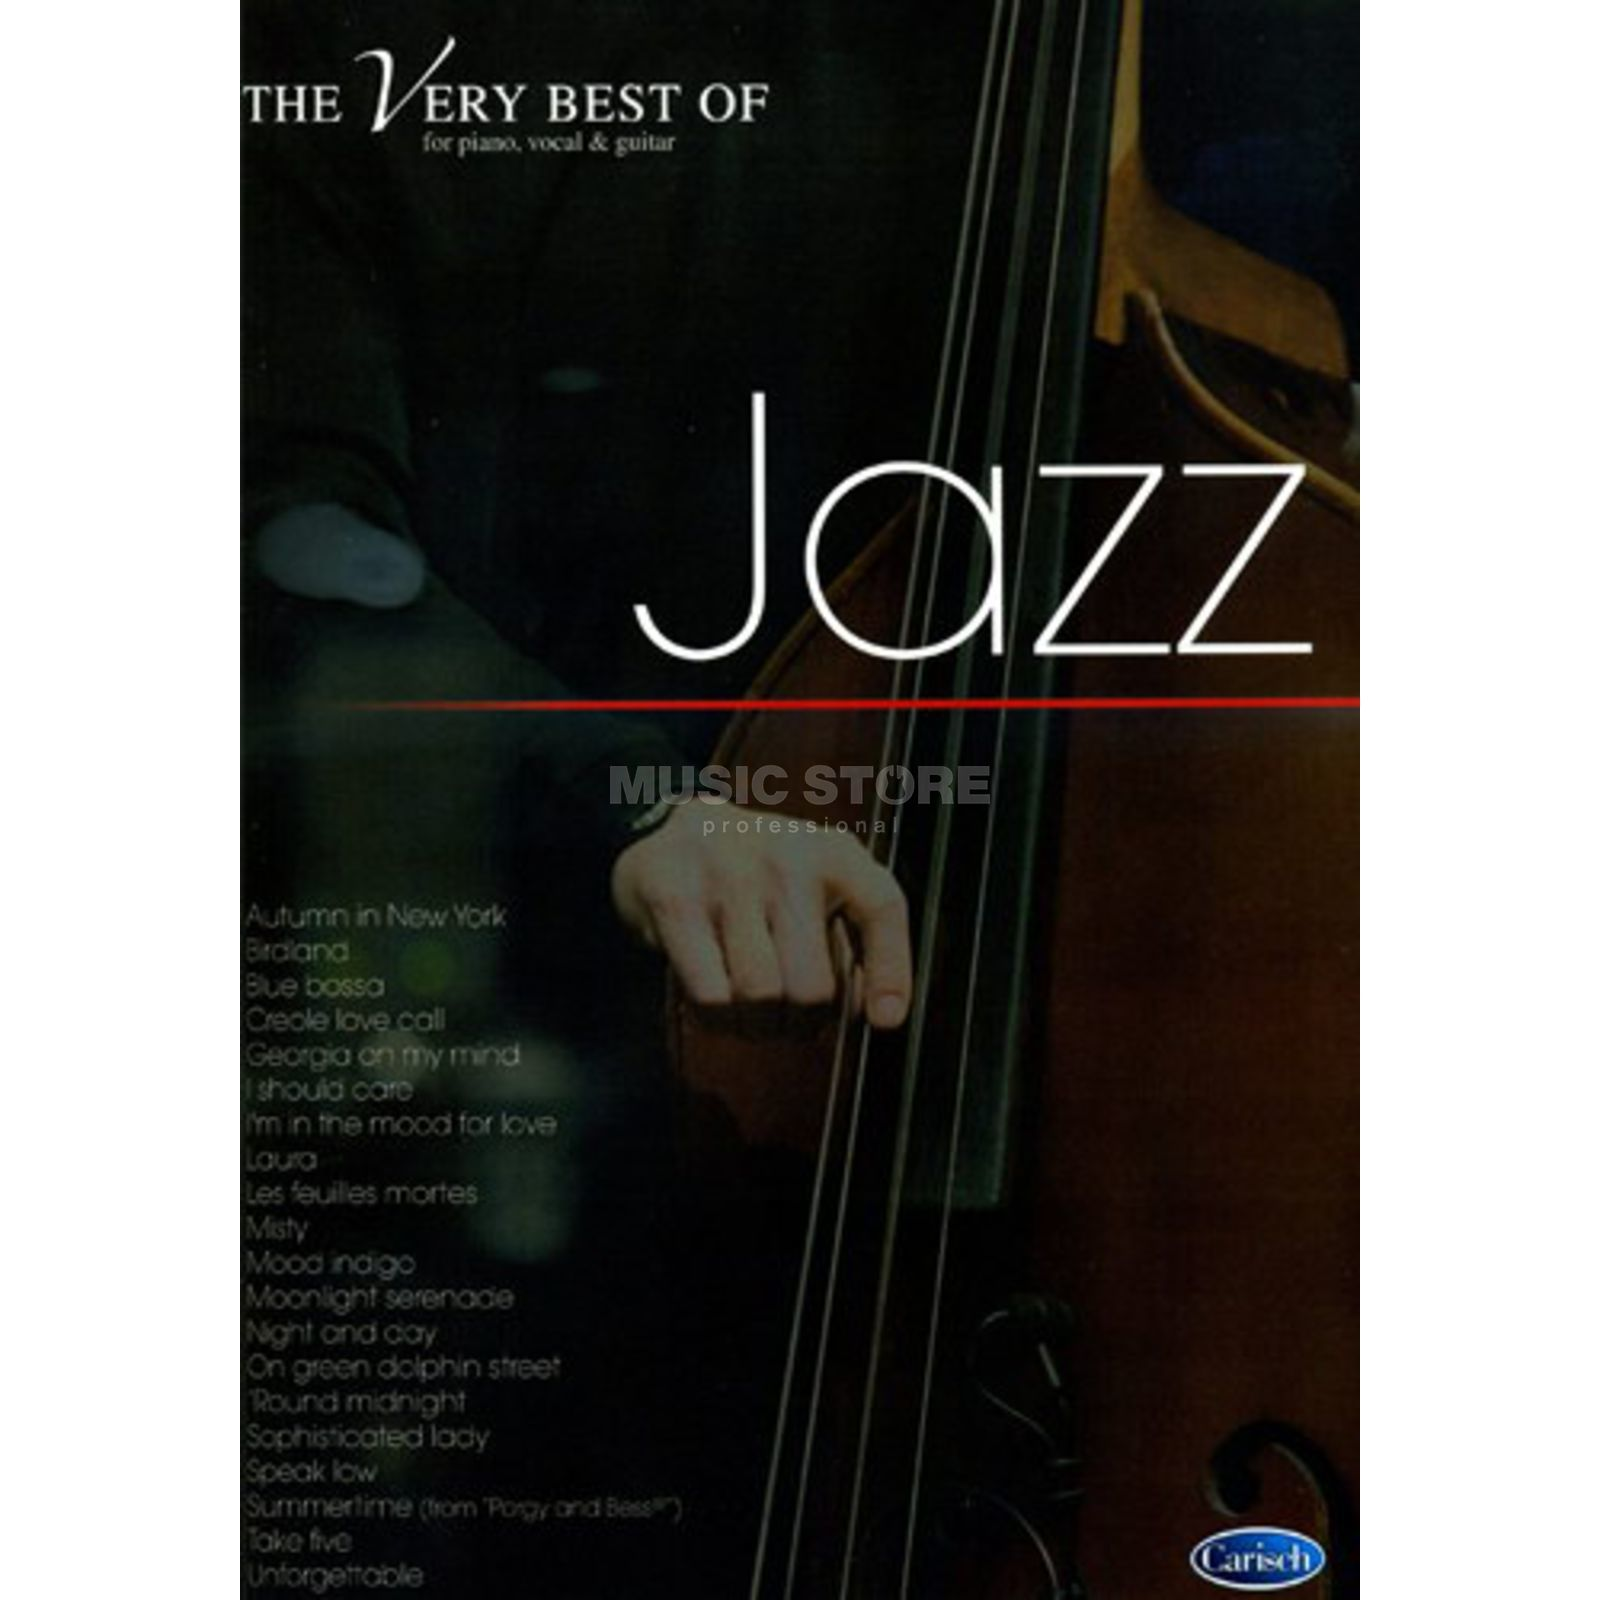 Carisch-Verlag The Very Best Of Jazz Produktbillede